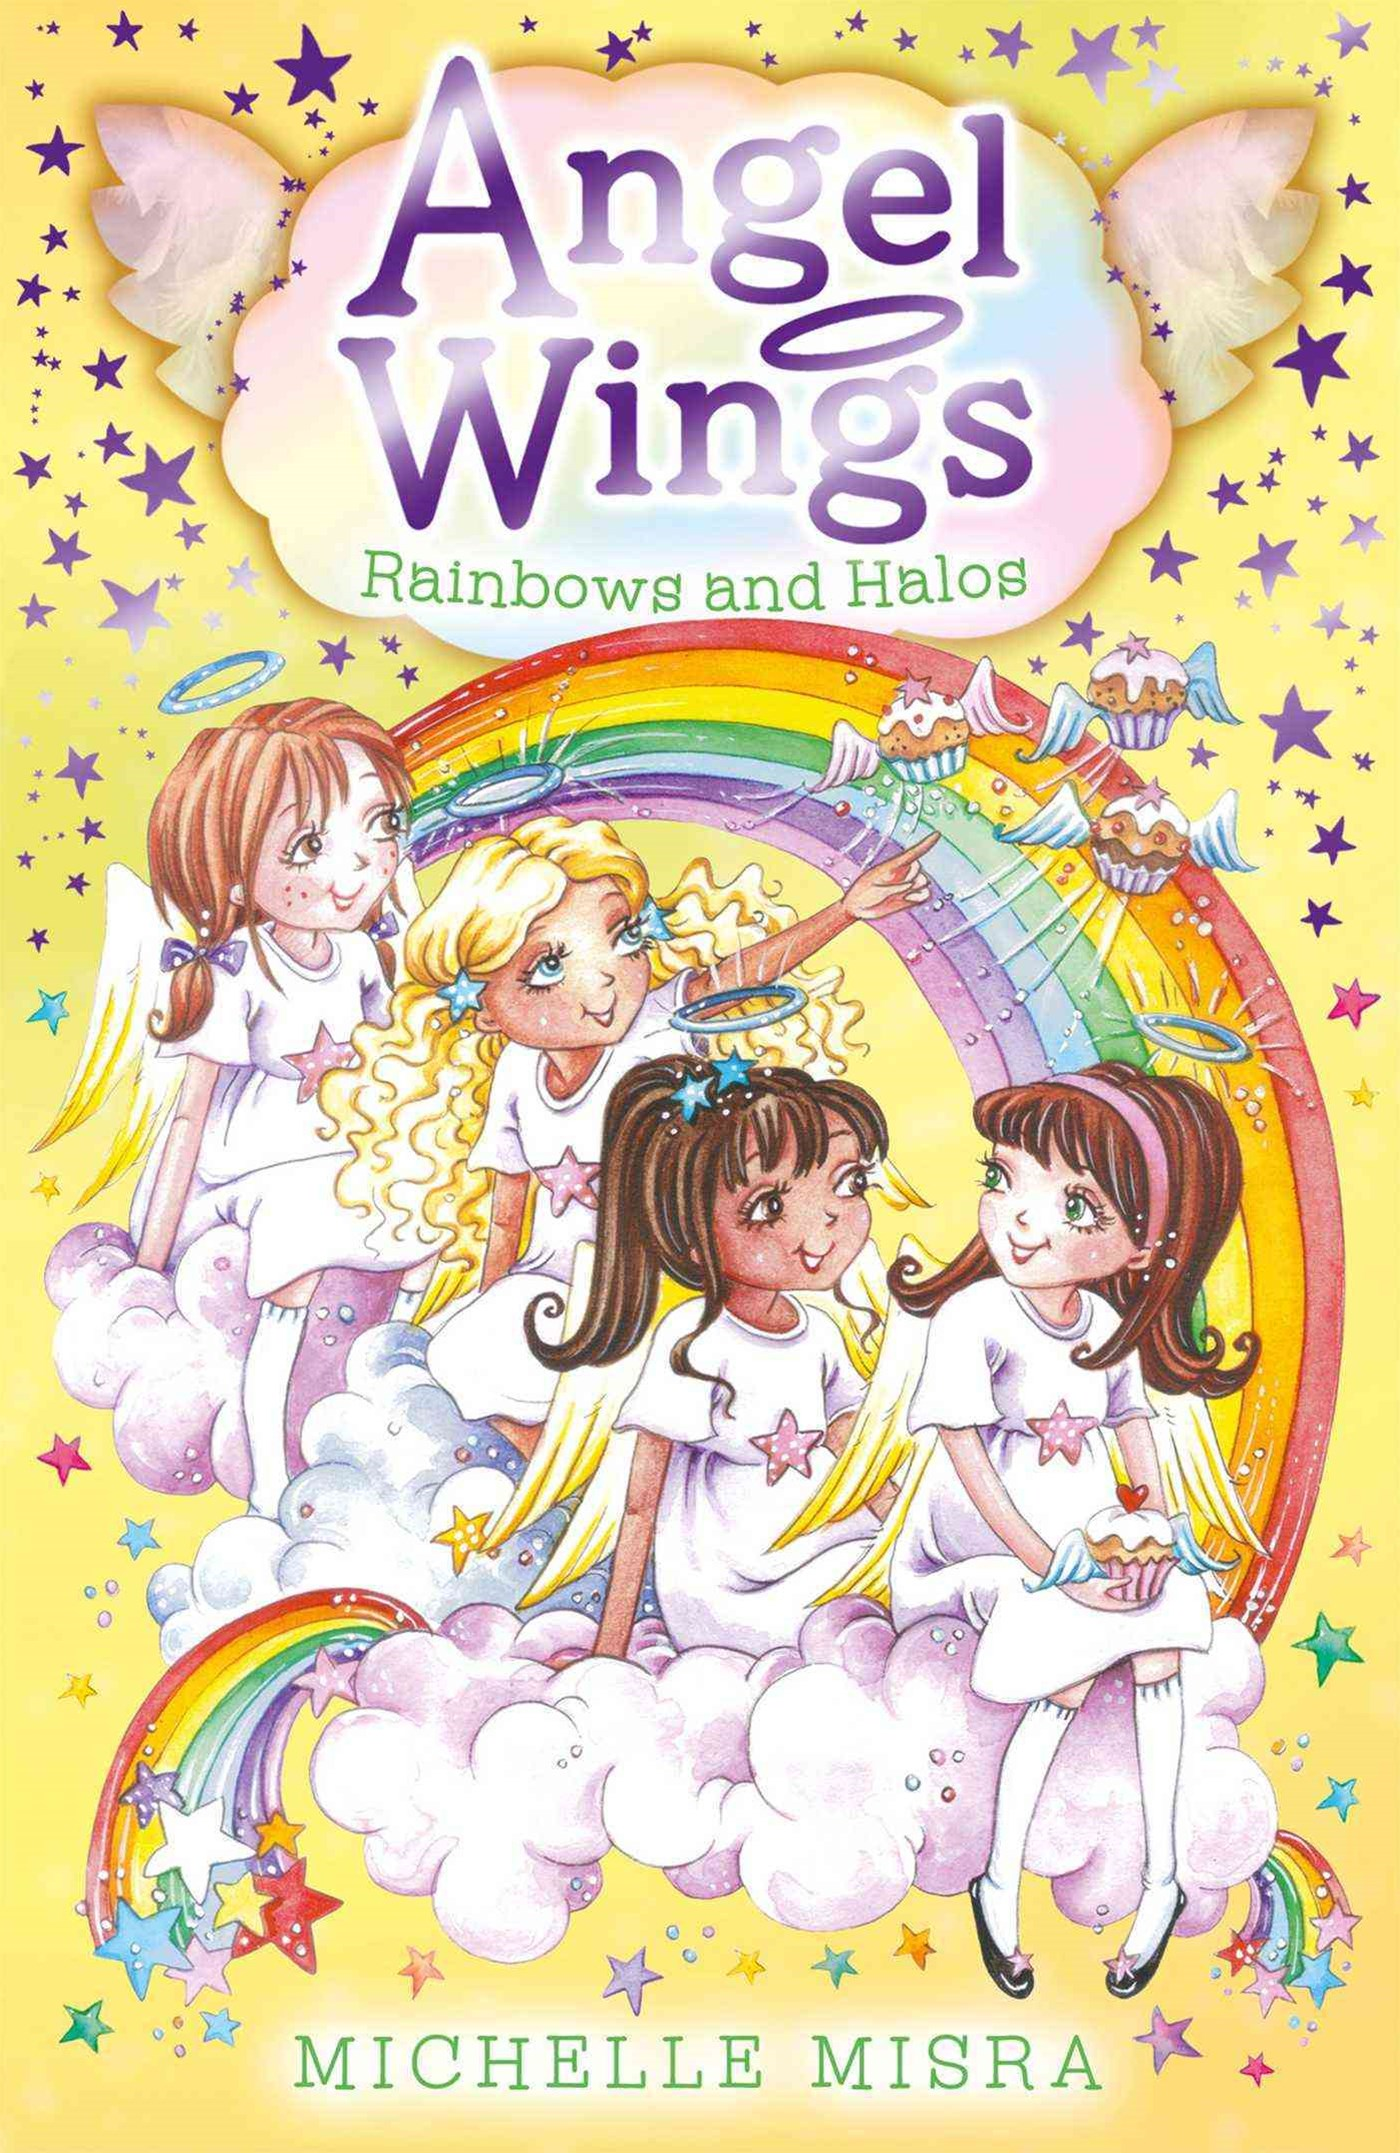 Angel Wings:Rainbows and Halos